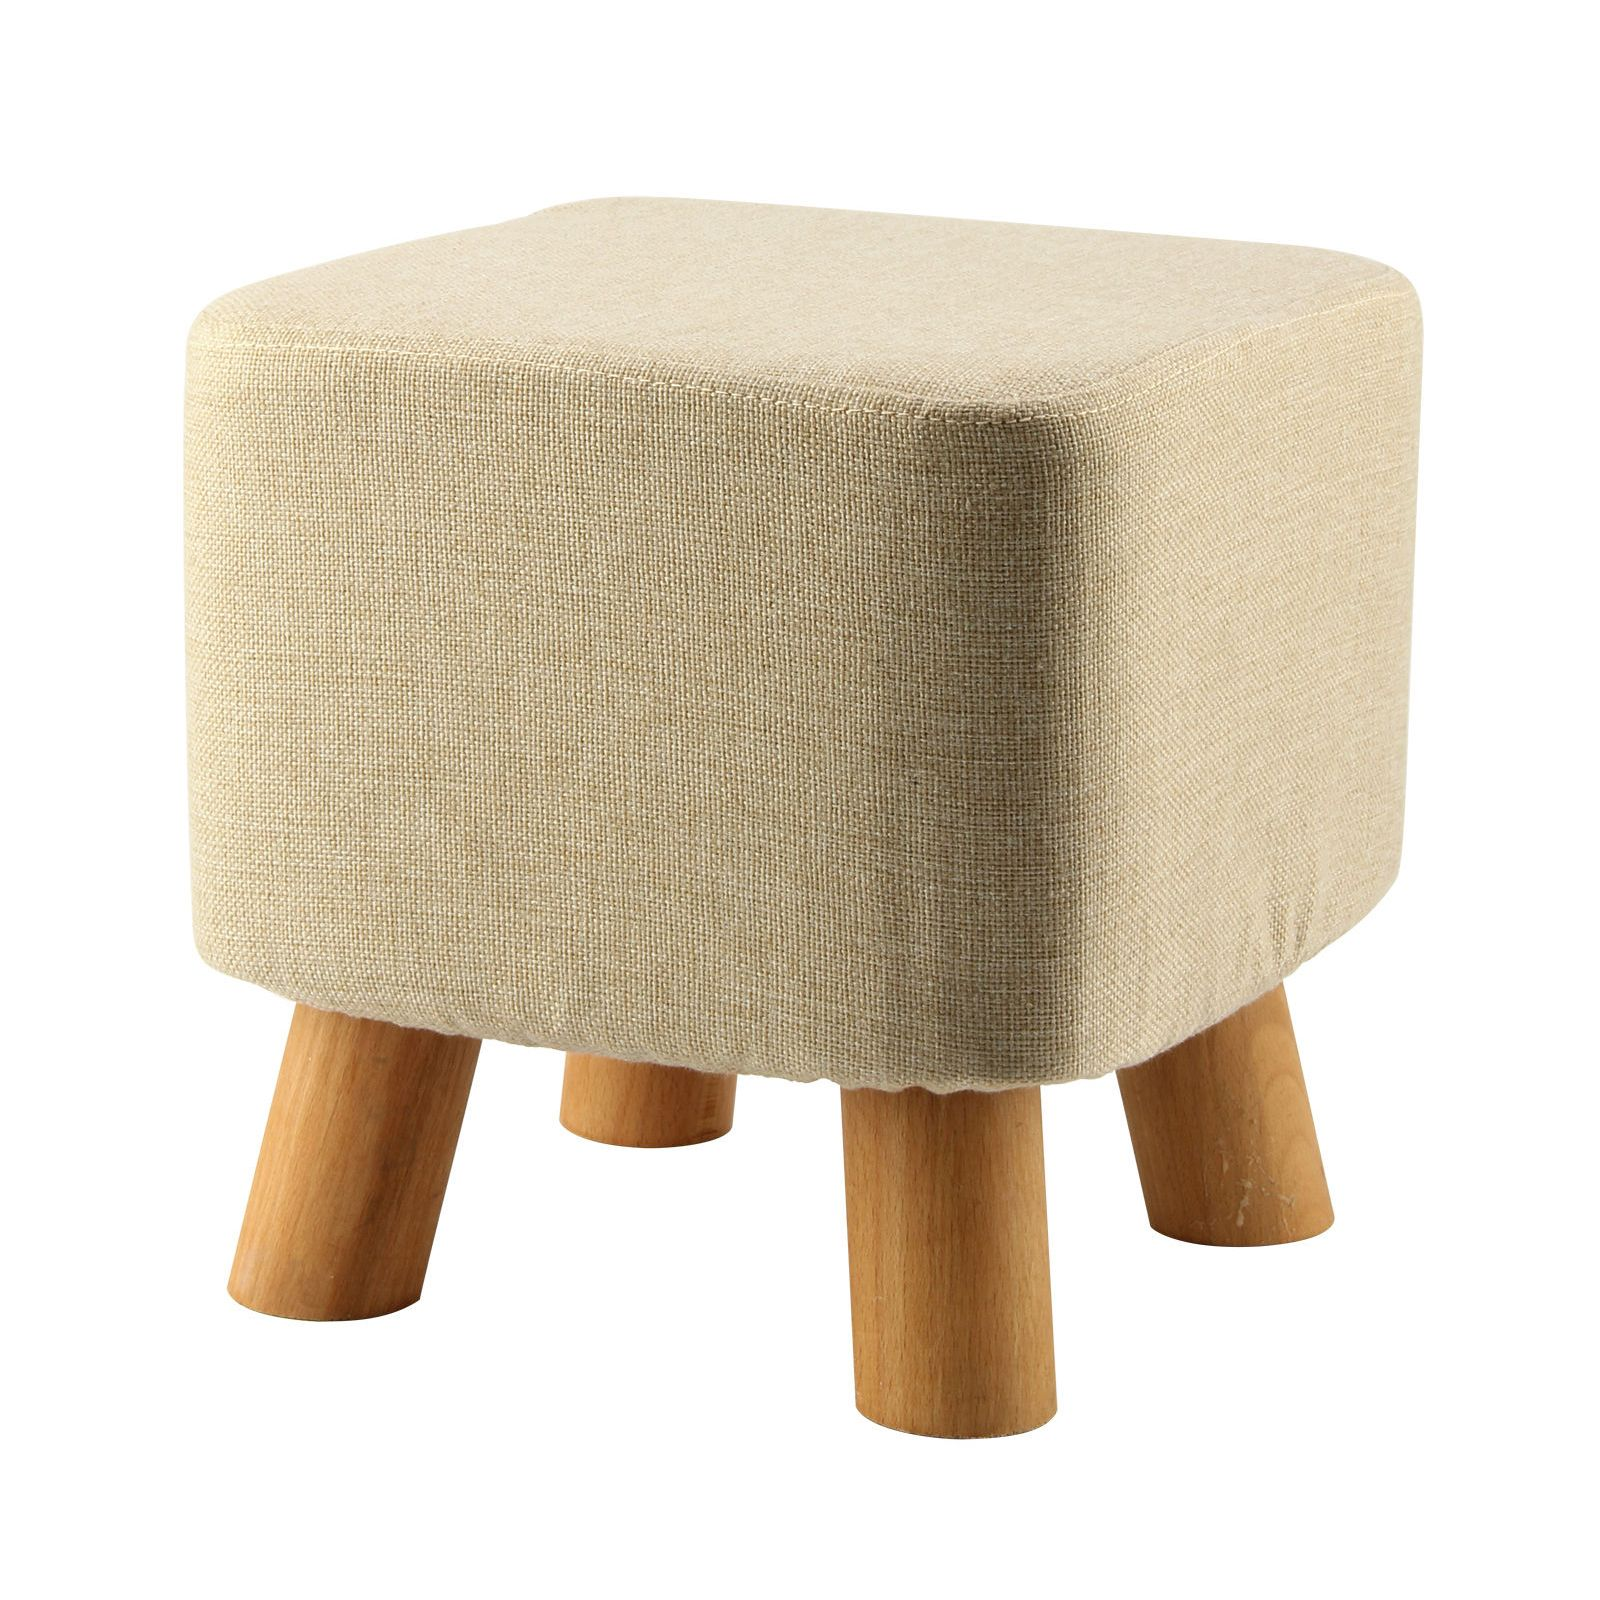 Magnificent Best Modern Luxury Upholstered Footstool Pouffe Stool Pdpeps Interior Chair Design Pdpepsorg